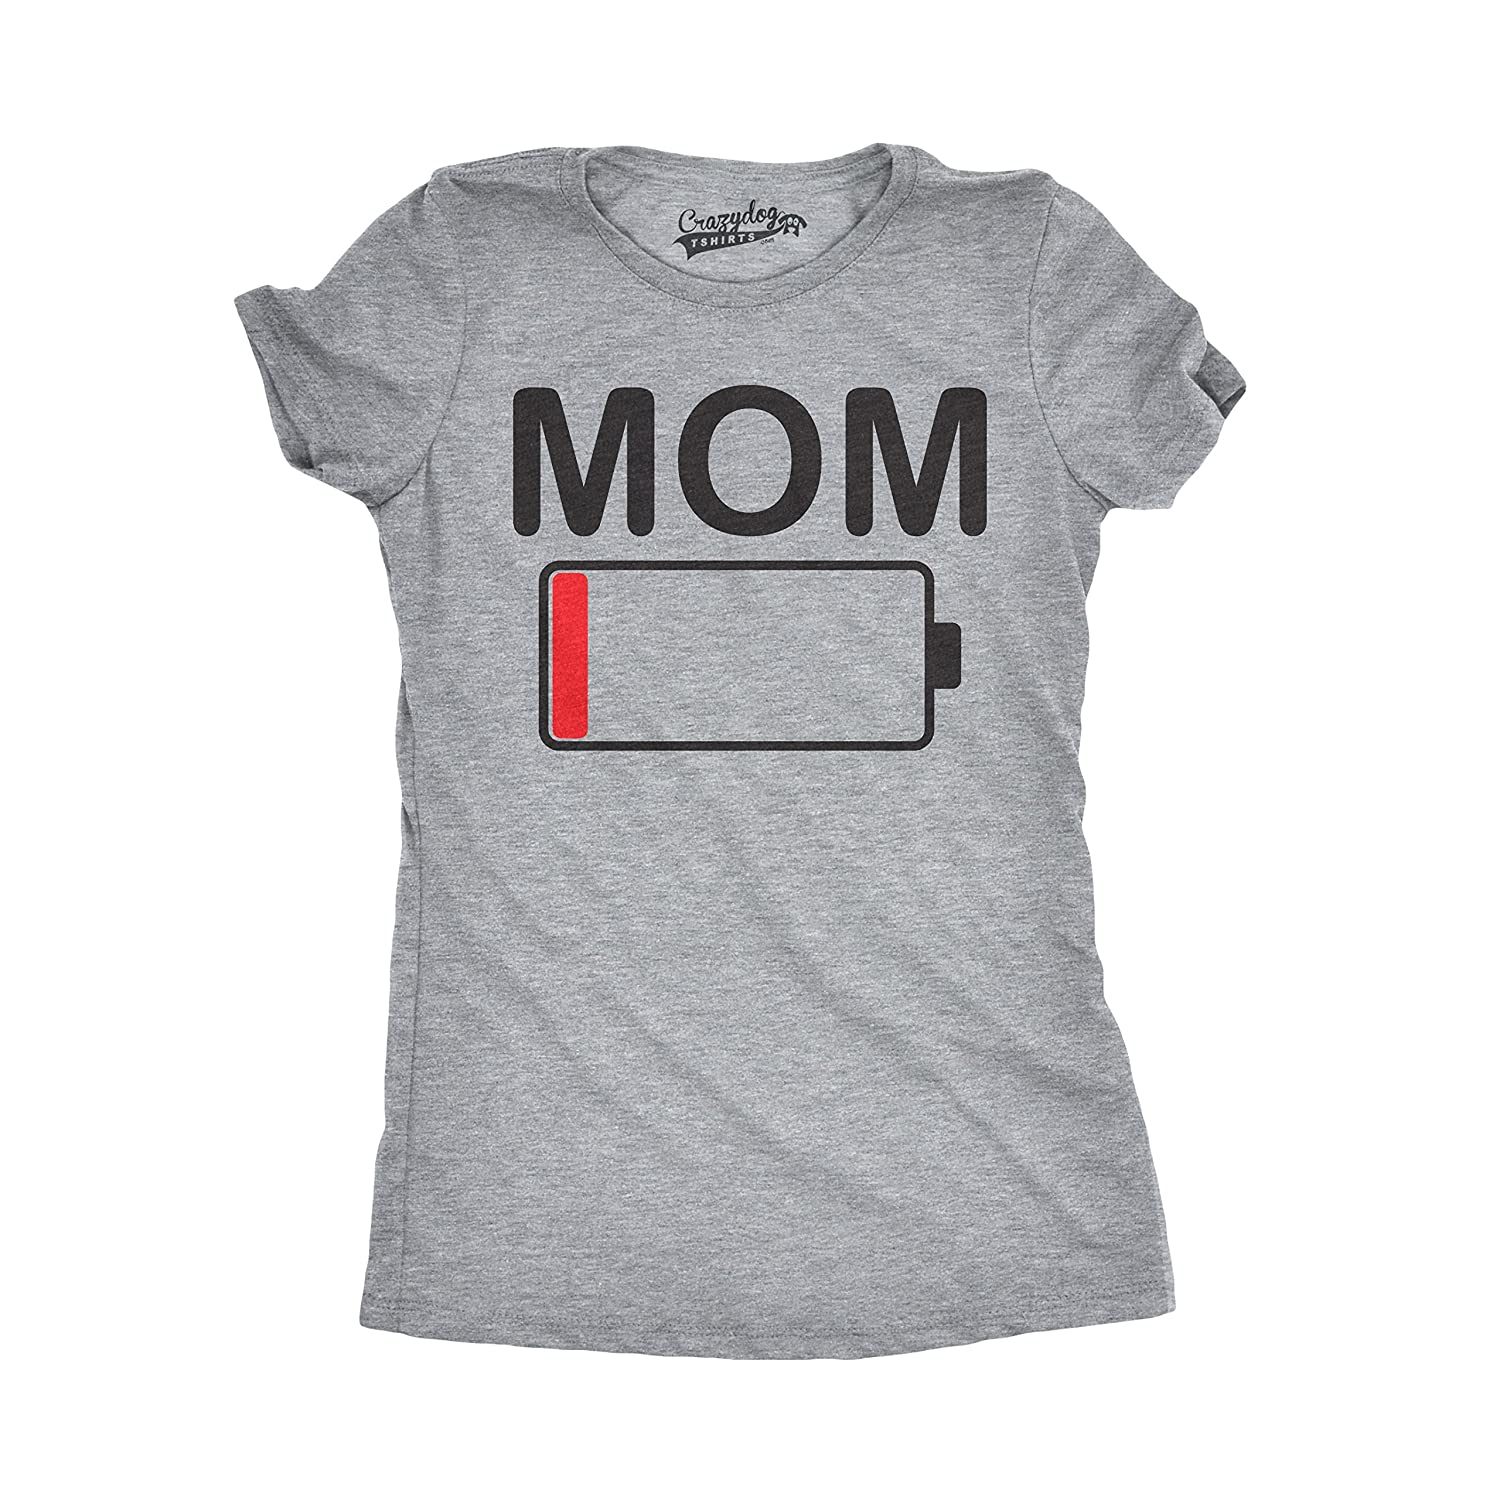 6ad2b7c8 Amazon.com: Womens Mom Battery Low Funny Empty Tired Parenting Mother T  Shirt: Clothing